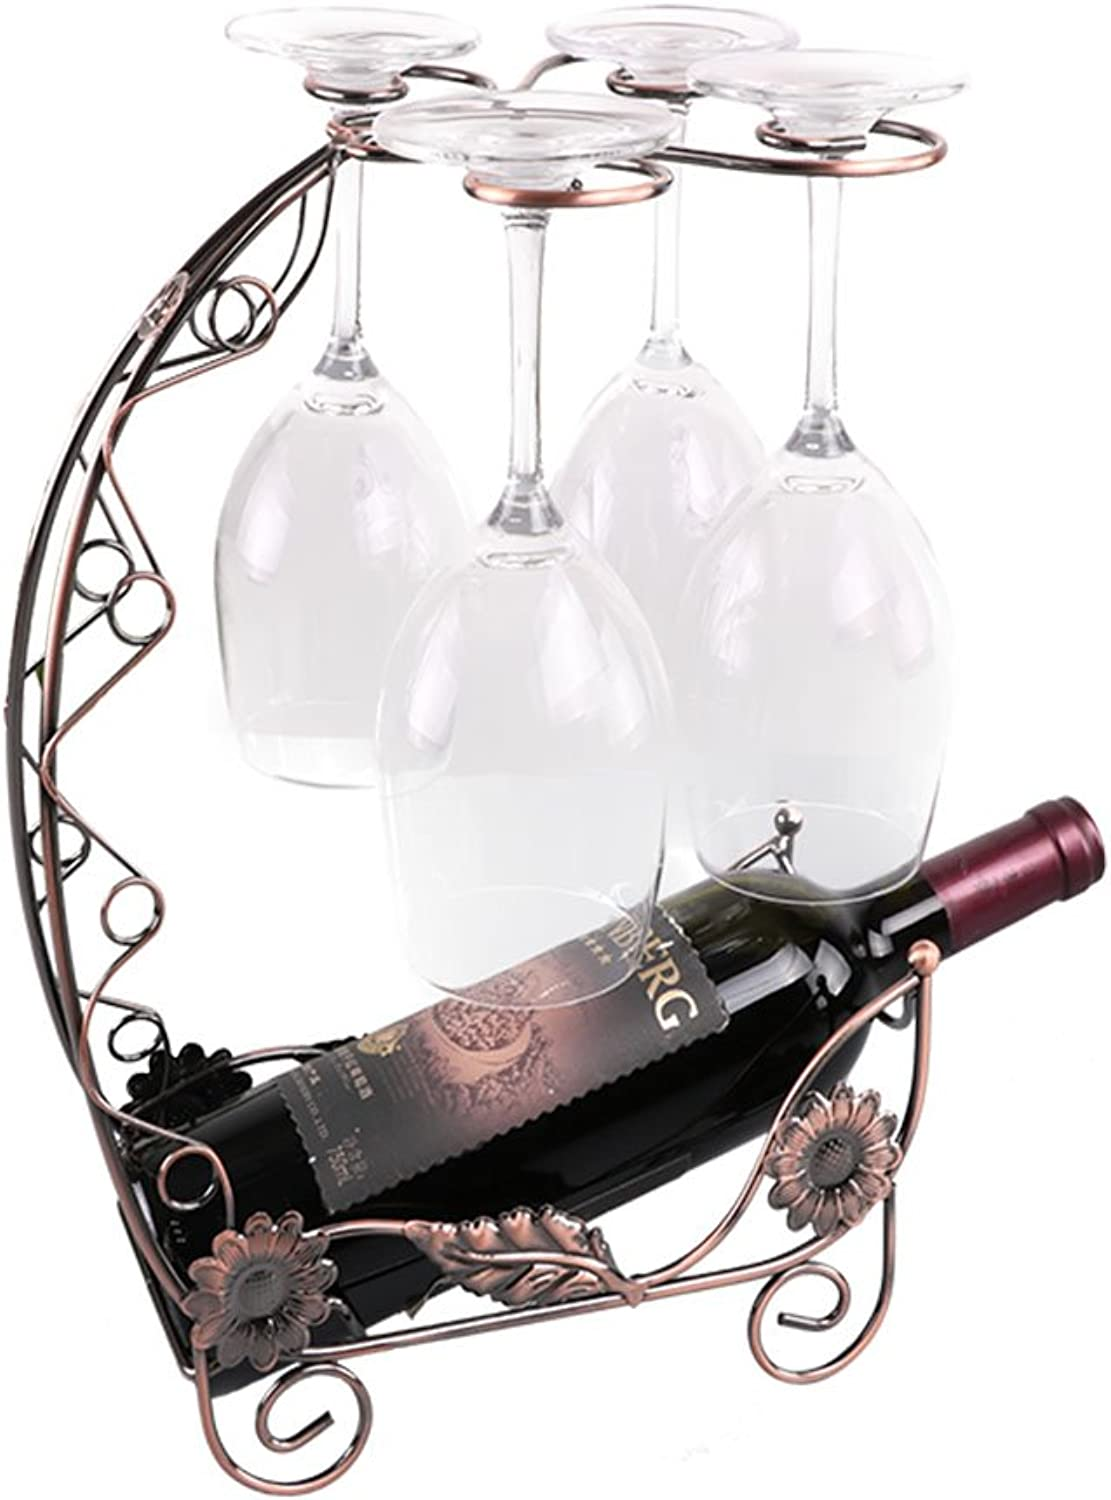 Tony home- Creative Wine Rack Decoration Red Wine Glass Shelf Hanging Wine Goblet Holder Household Wine Cabinet Wine Rack Wine Cabinets